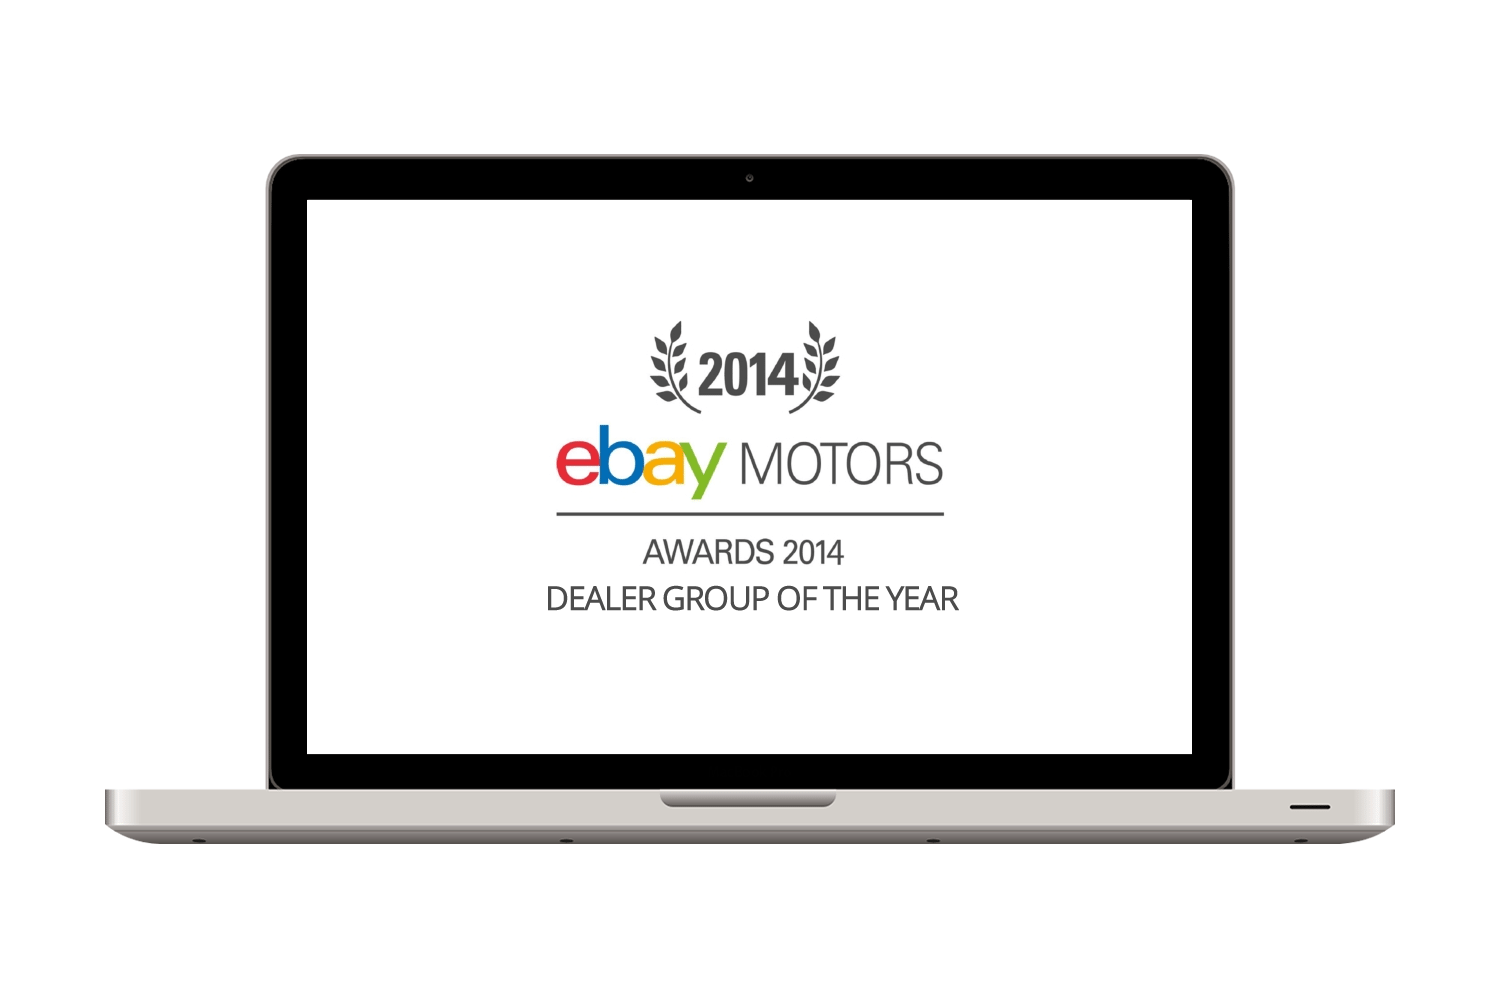 Perrys scoop eBay's 'Dealer Group of the Year Award'